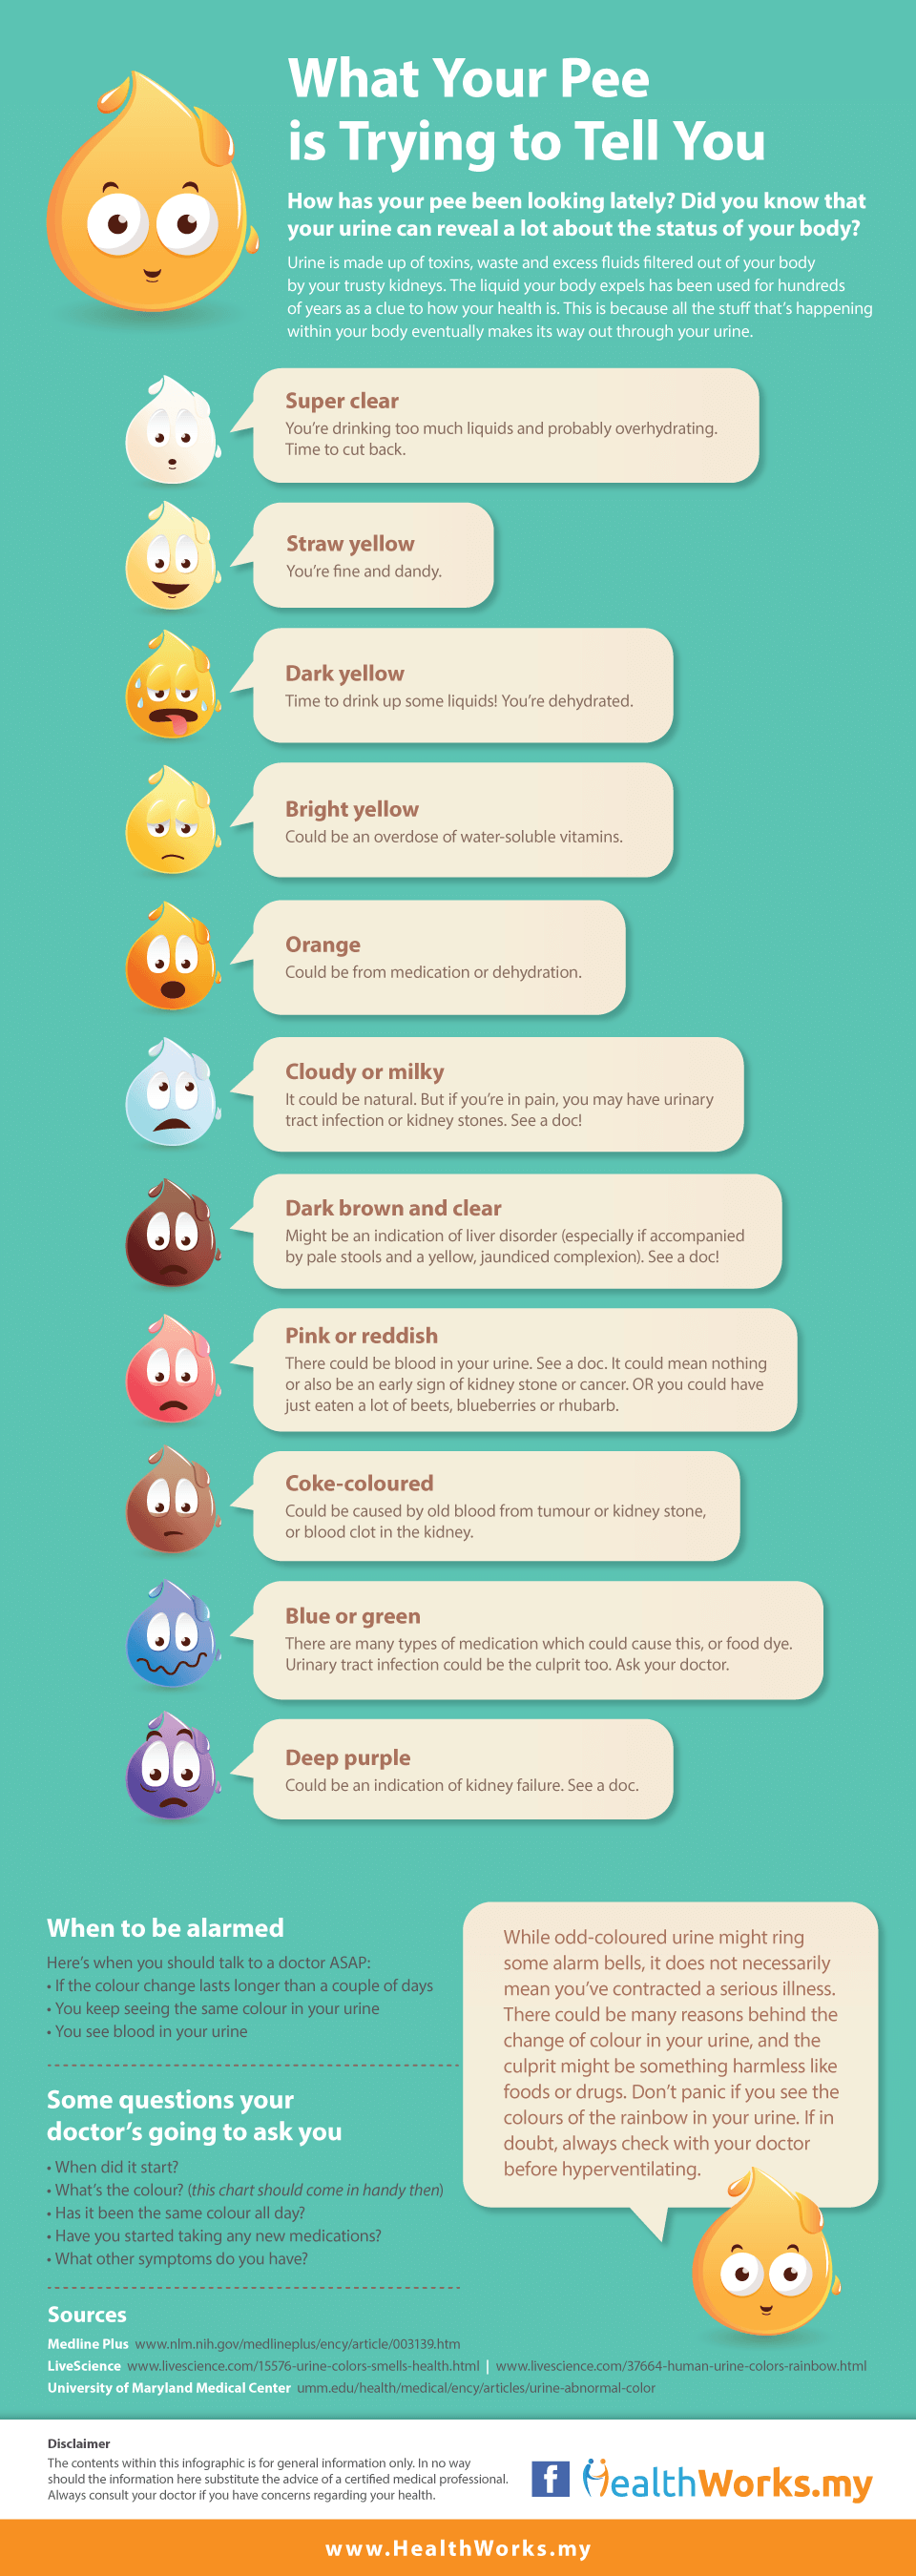 Urine Colour to Diagnose Disease - Pee May Reveals Symptom urine,colour,diagnose,pee,disease,symptom,infographic